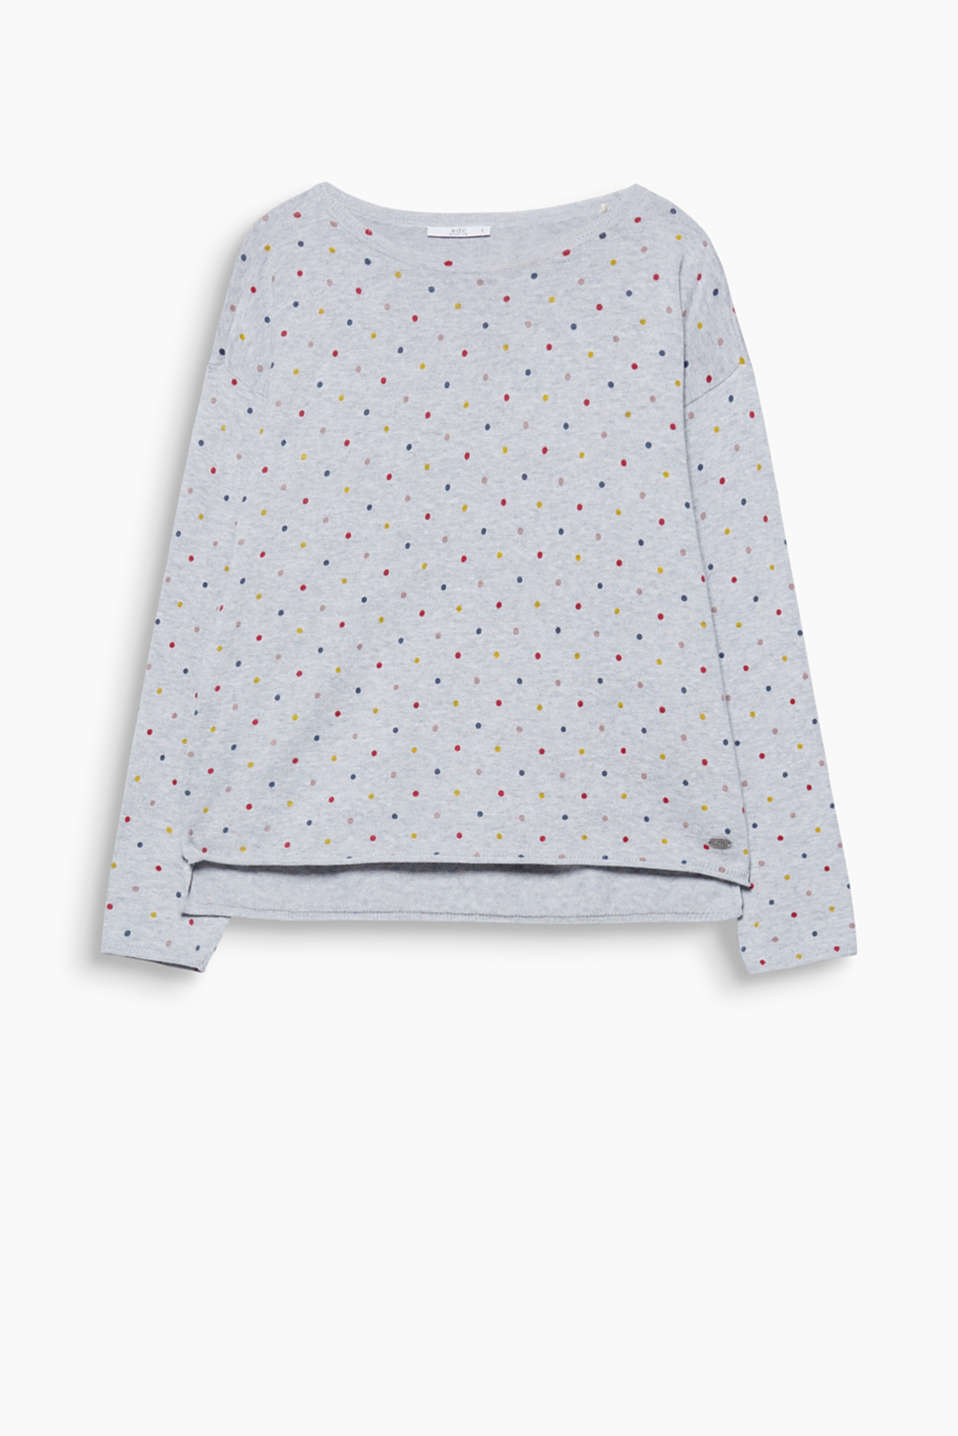 Fine-knit cotton jumper with polka dots, dropped shoulders and a high-low hem